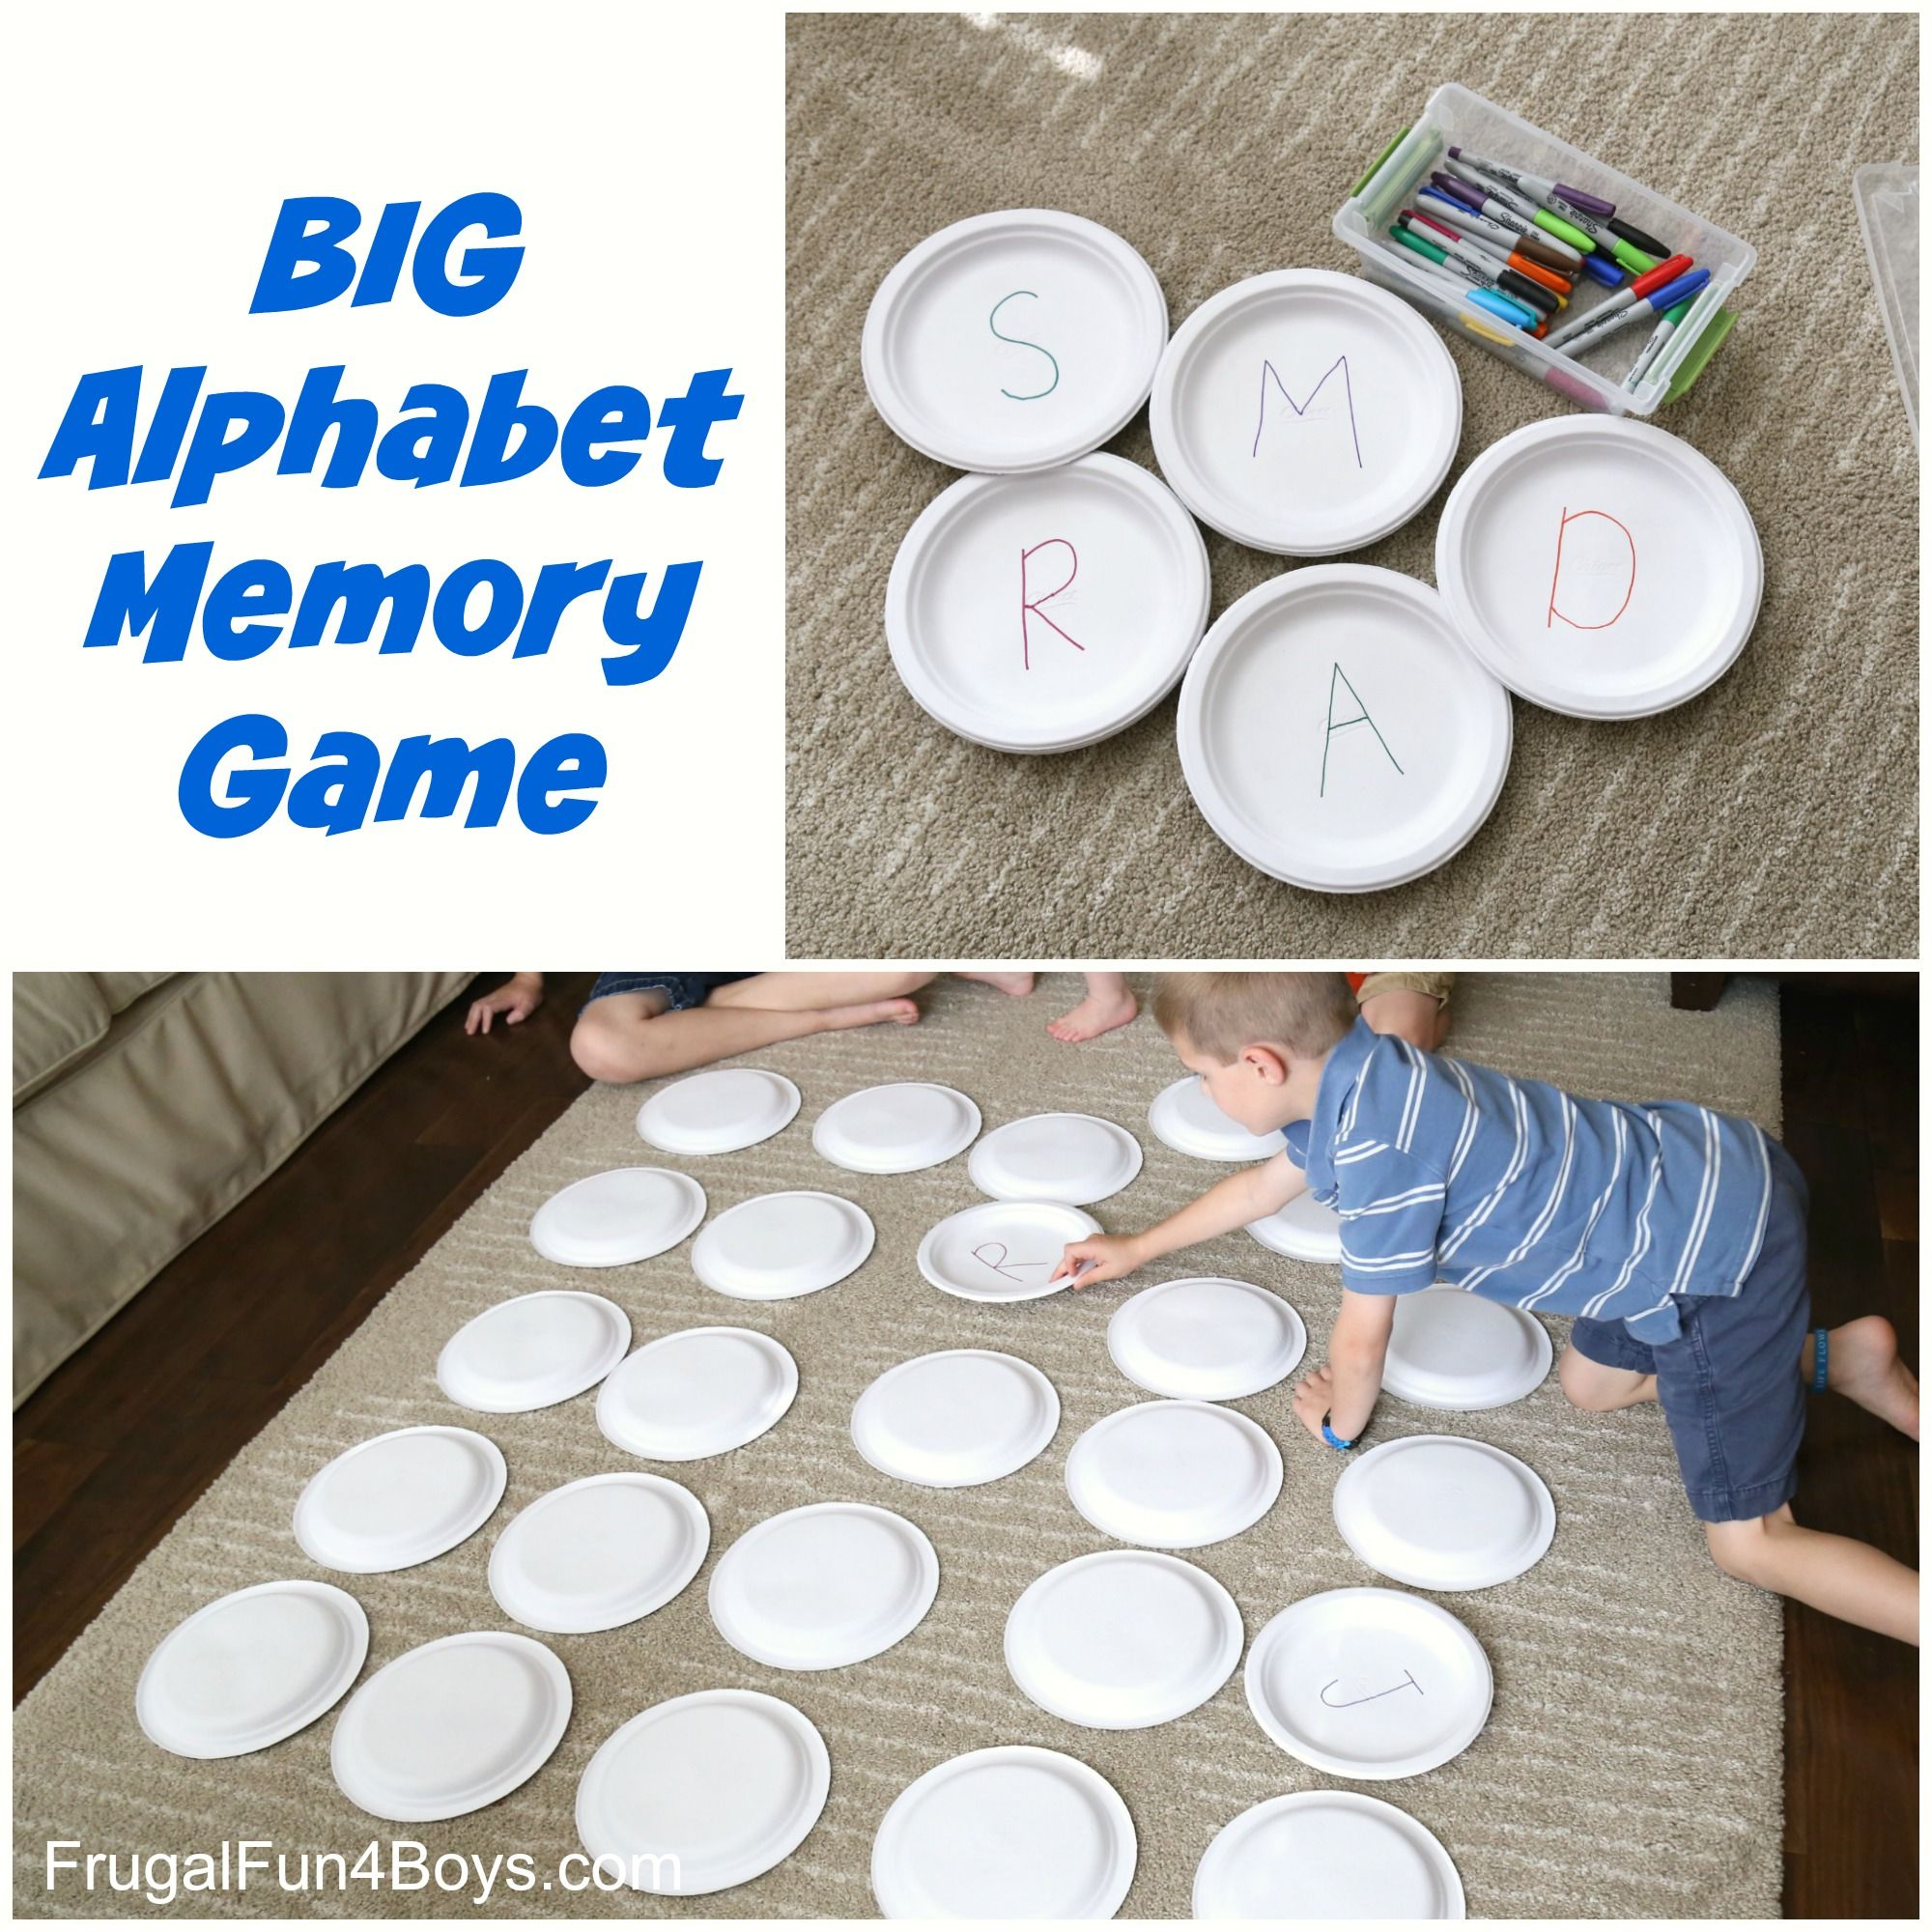 Paper Plate BIG Alphabet Memory Game Learning games for